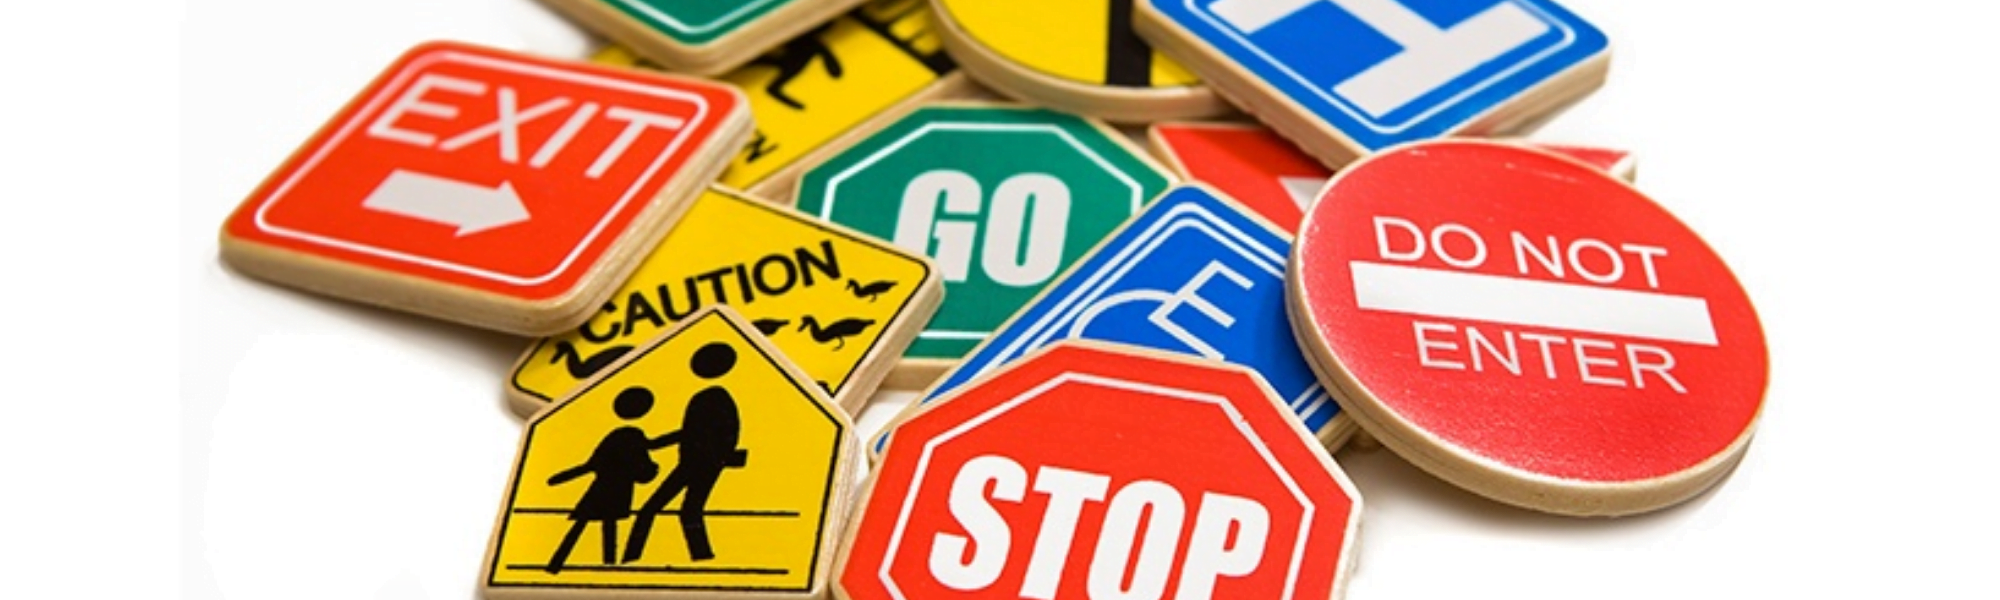 High Risk Driver Offenses | Bryson Insurance Brokers